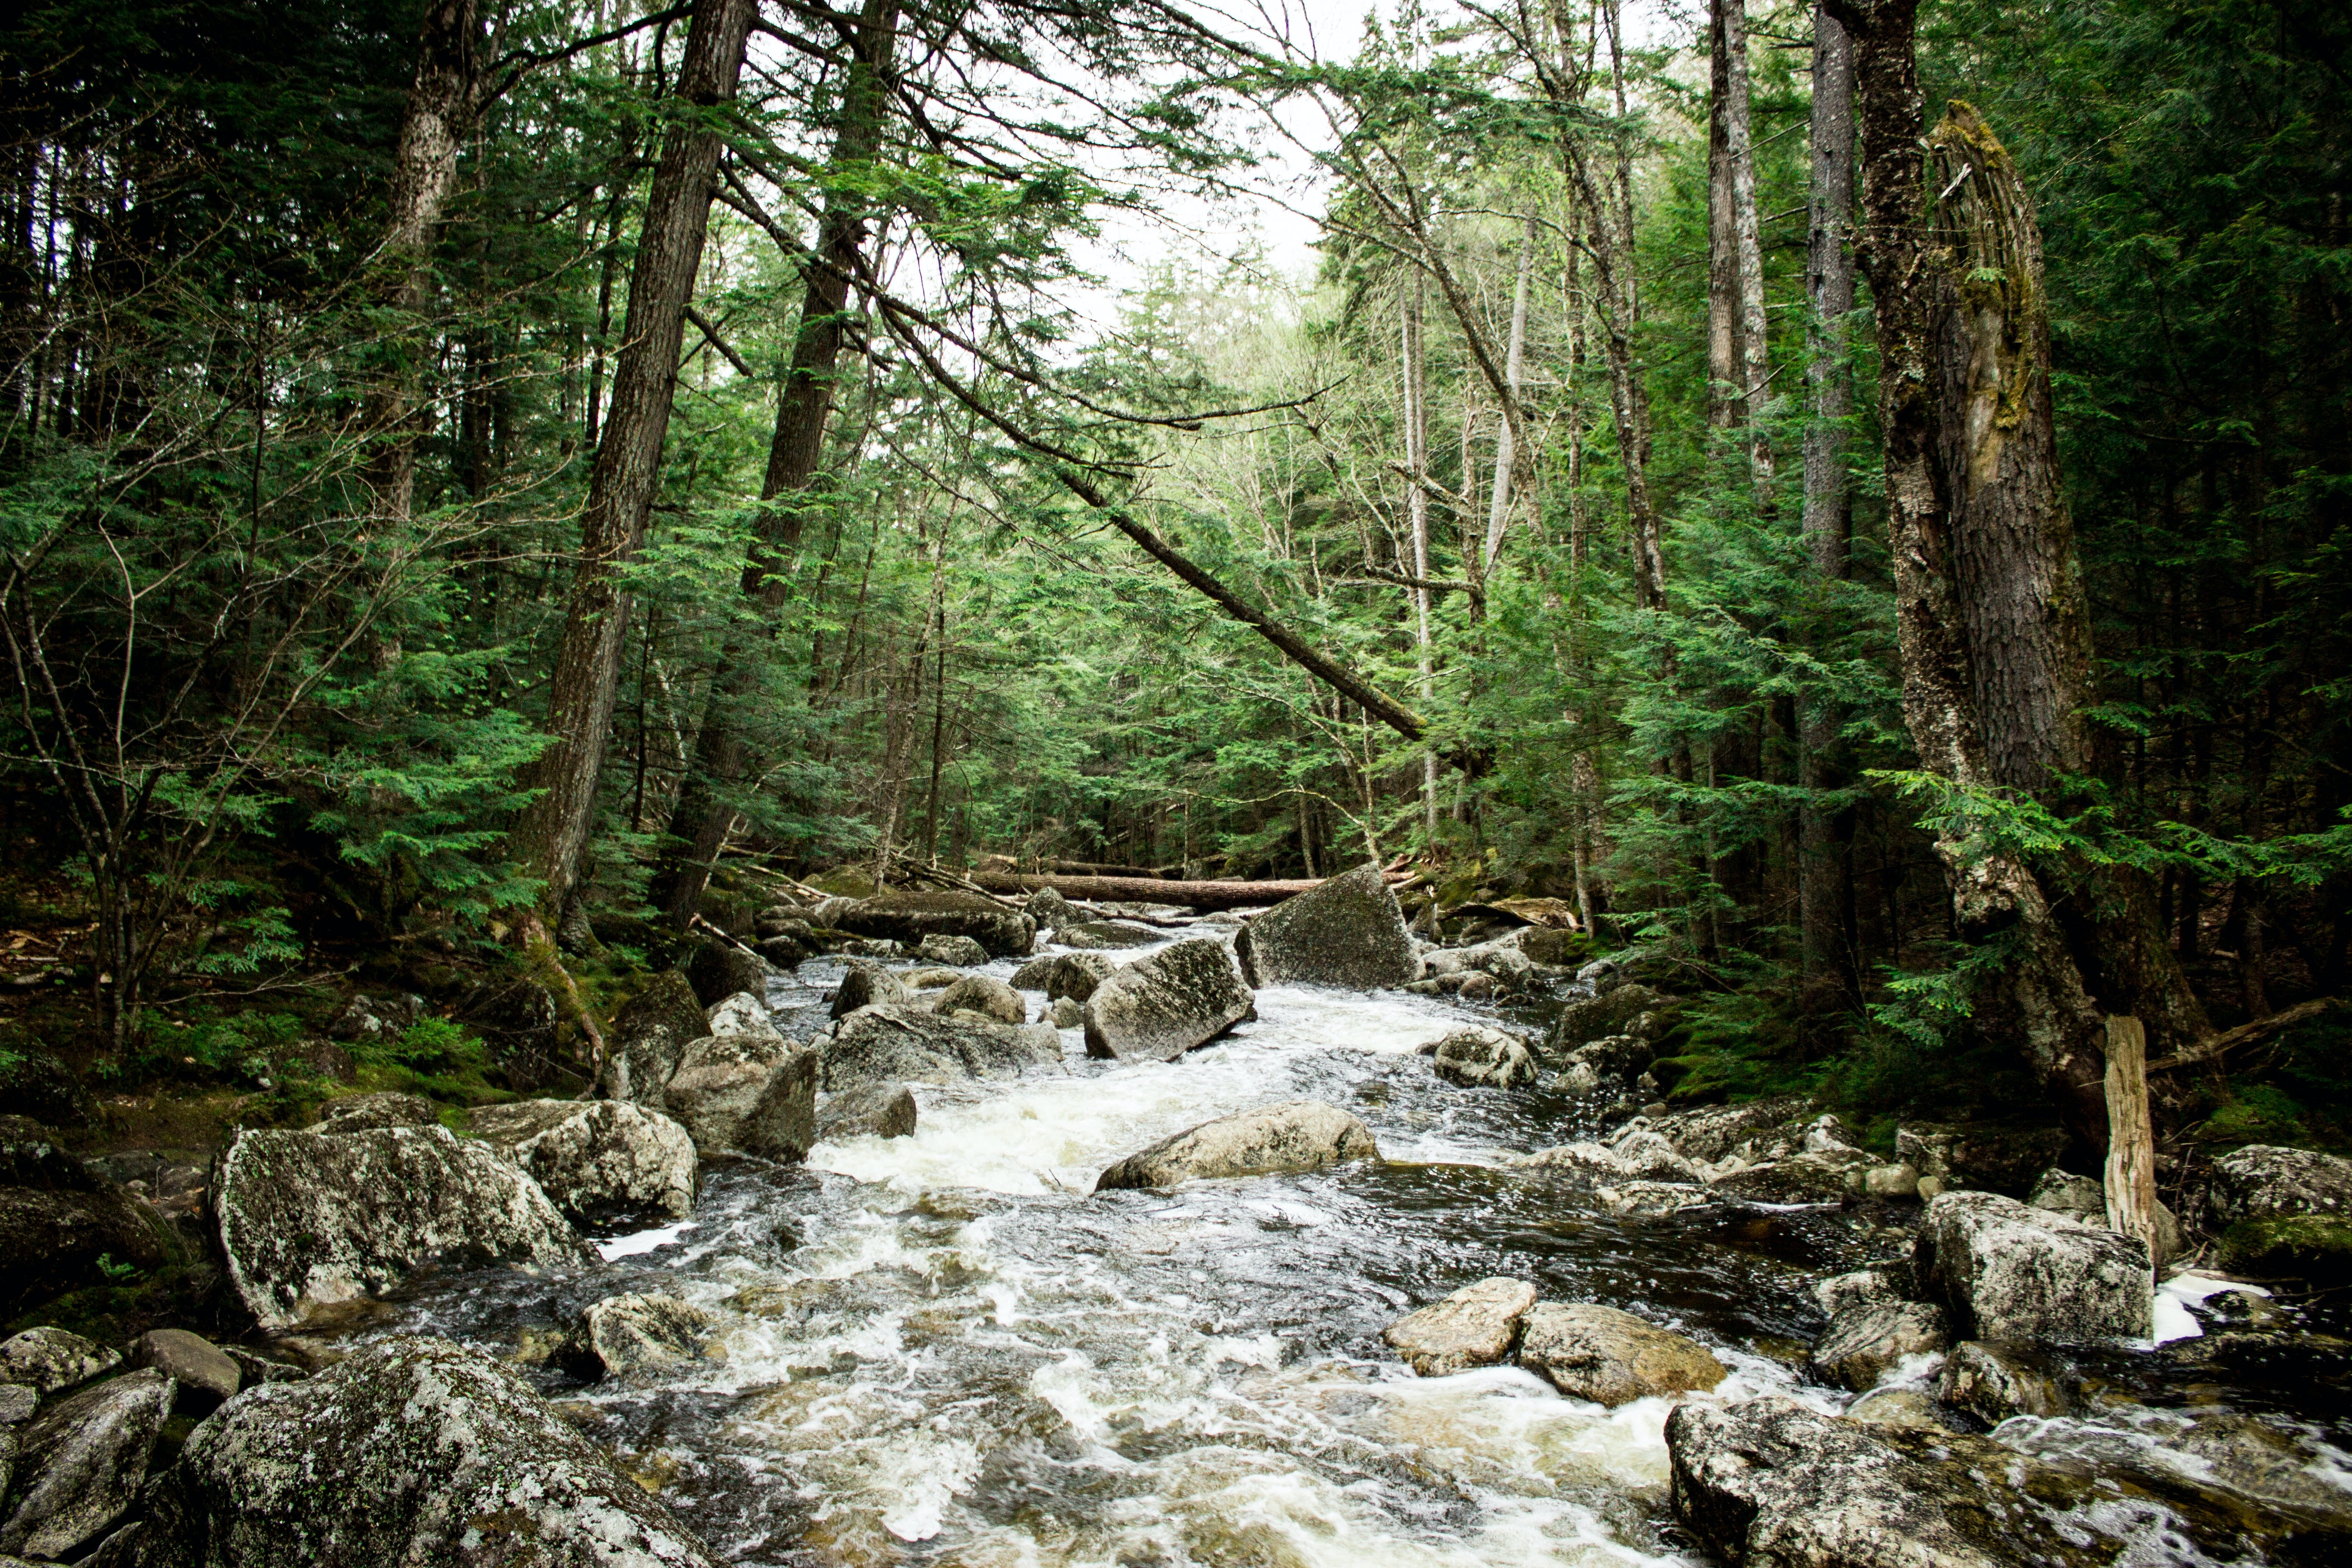 landscape photography of forest with river